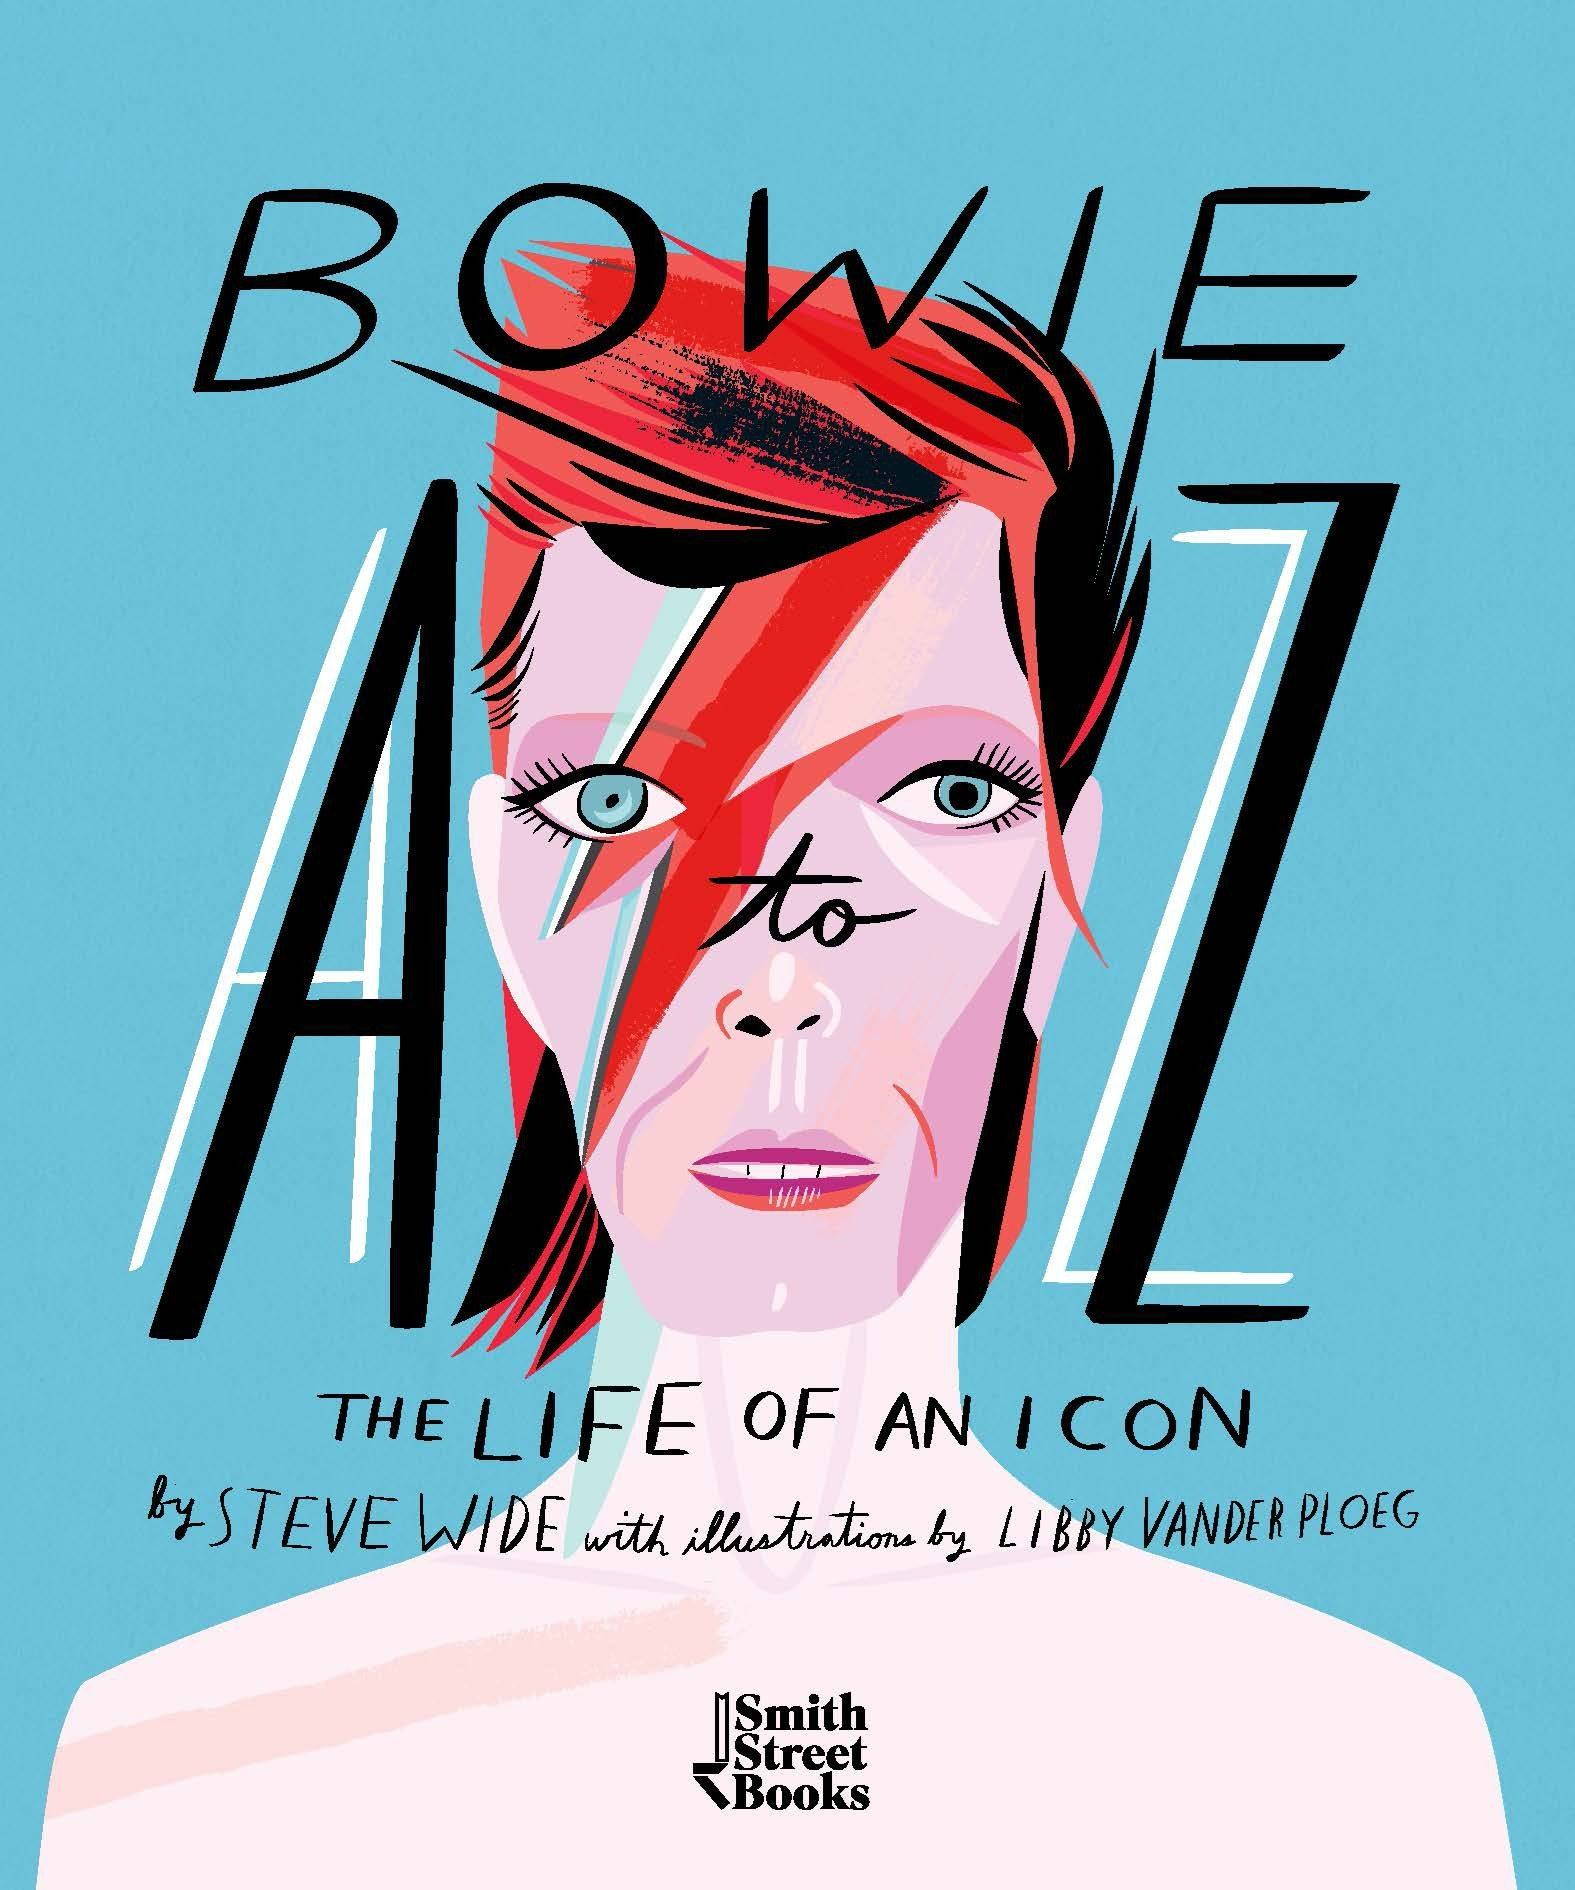 Bowie A to Z - The Life of an Icon - Steve Wide